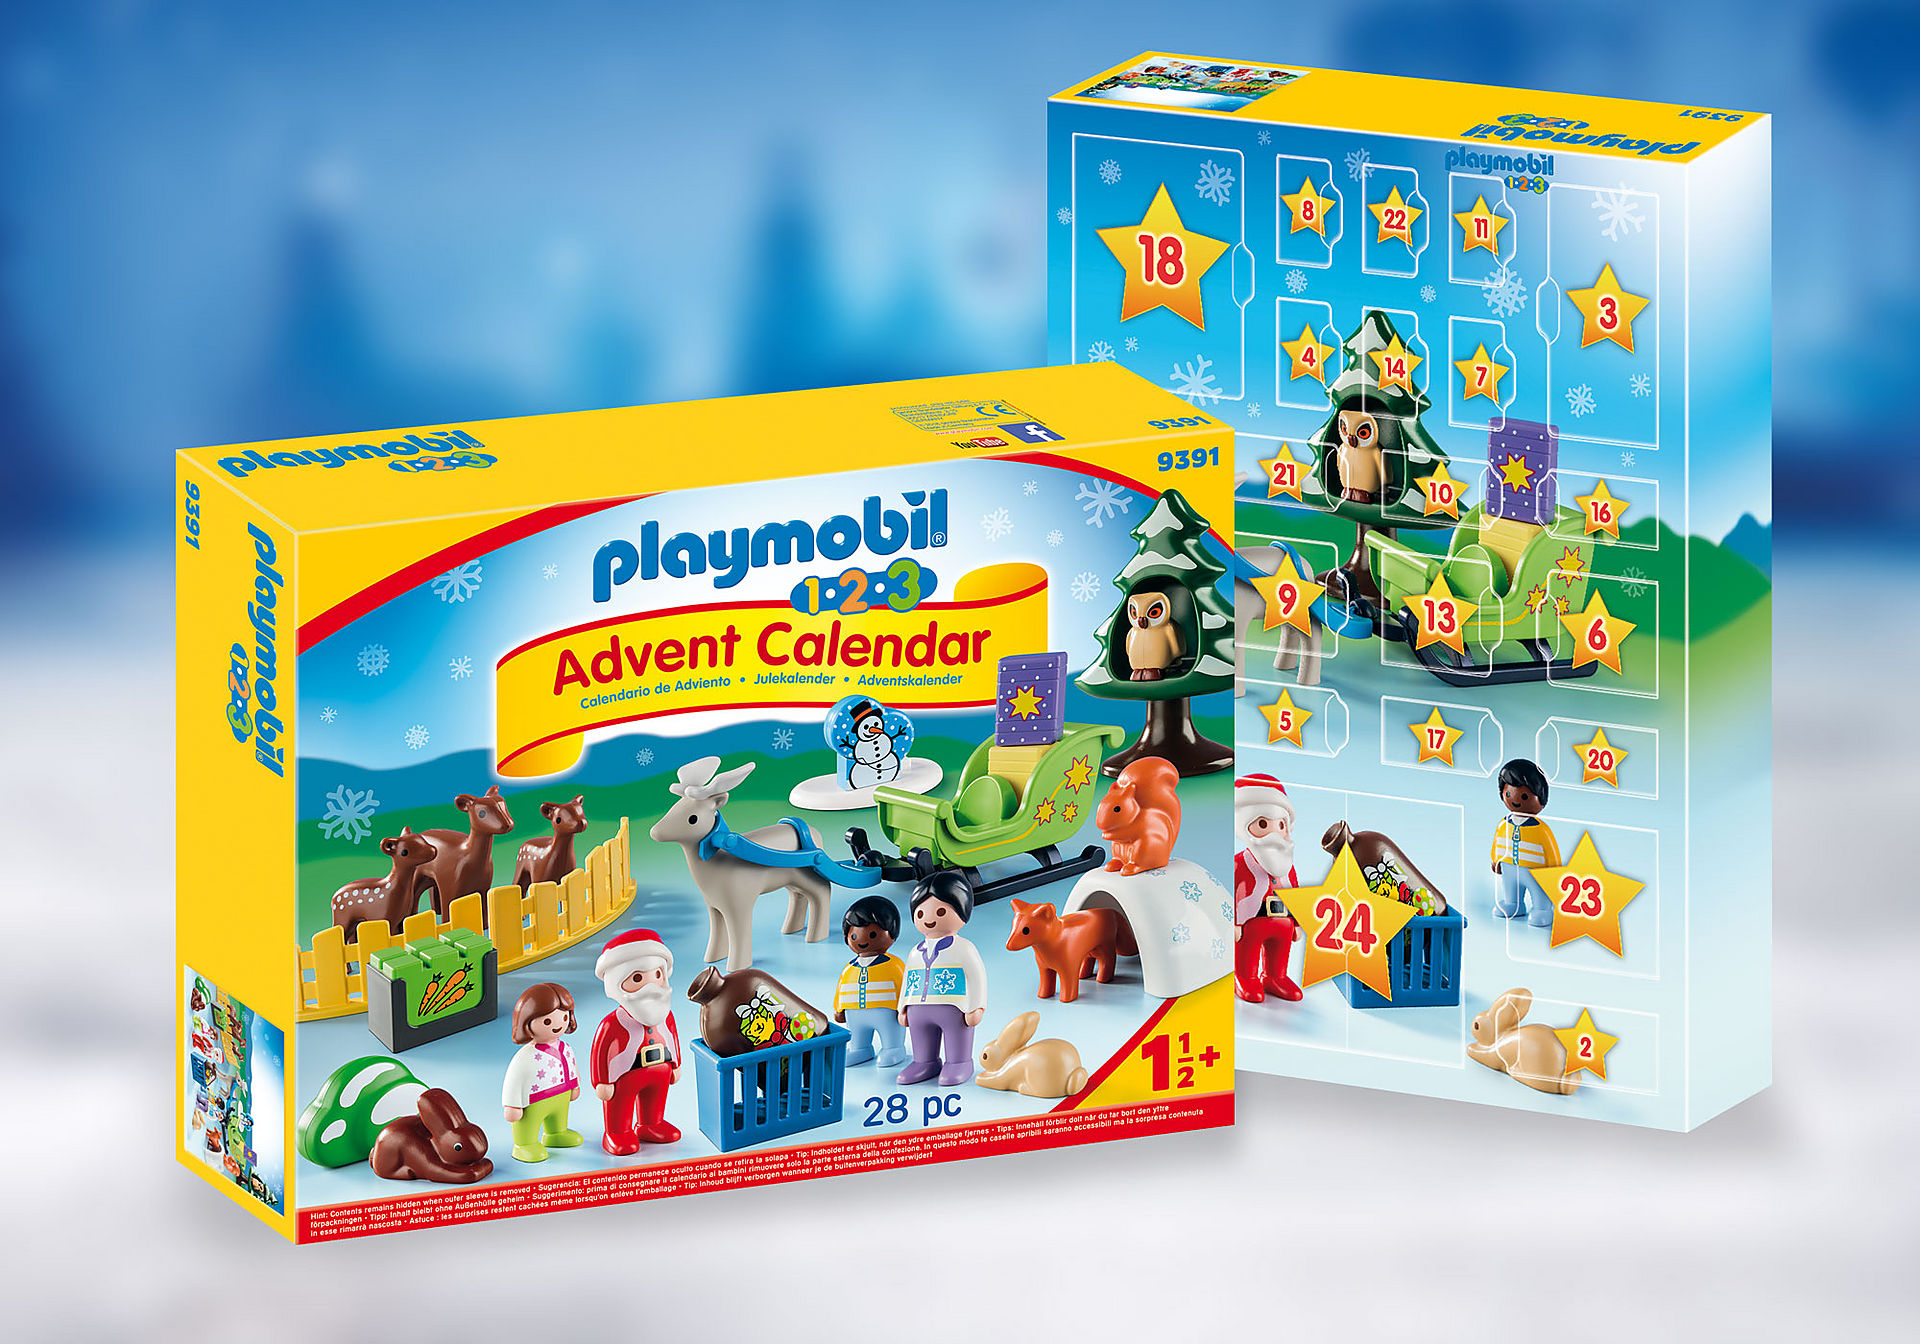 http://media.playmobil.com/i/playmobil/9391_product_detail/1.2.3 Advent Calendar - Christmas in the Forest